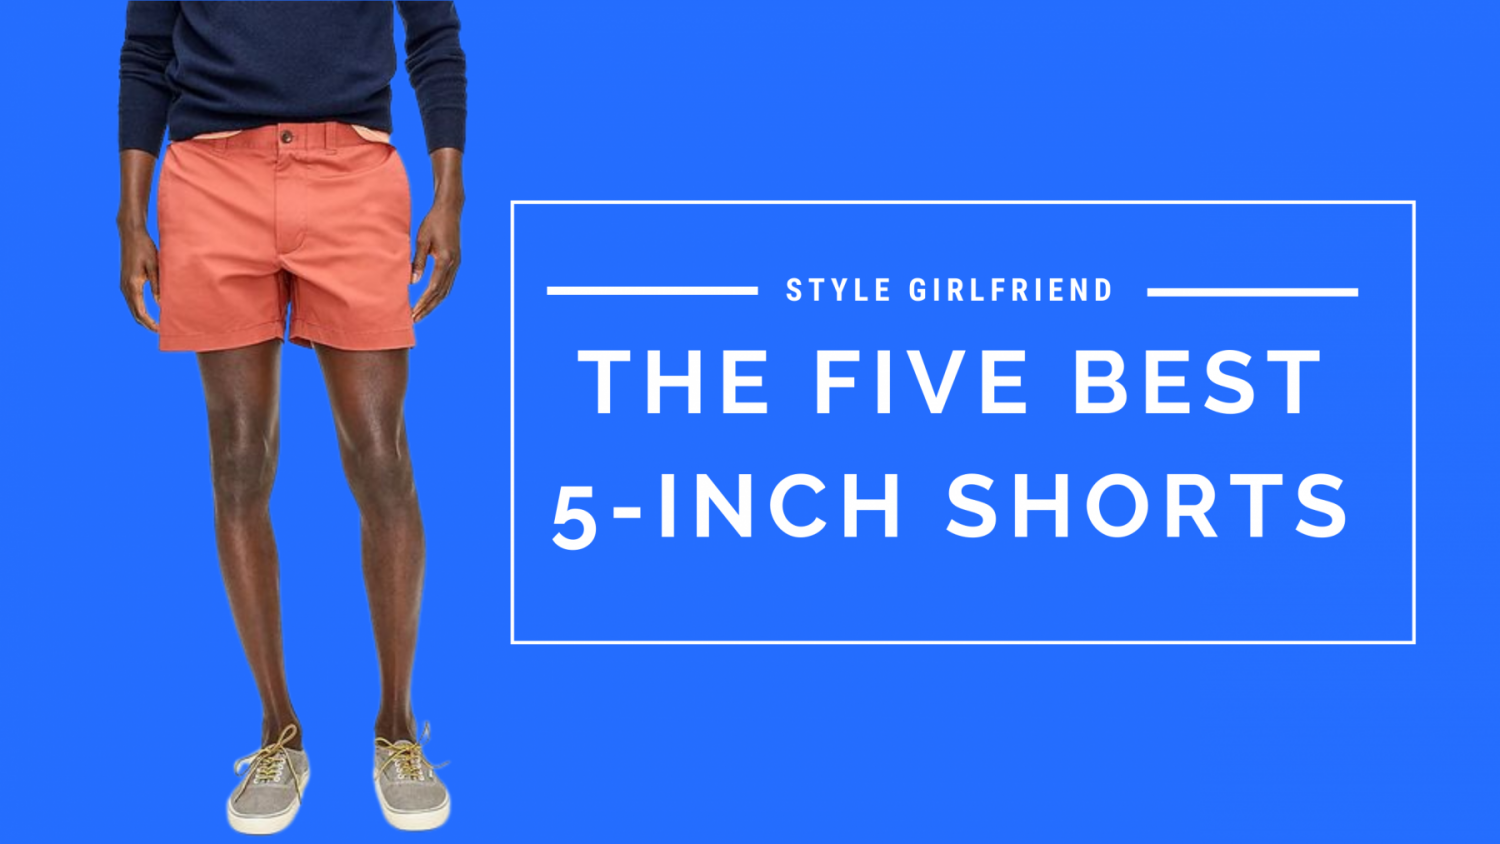 the best 5-inch shorts for men